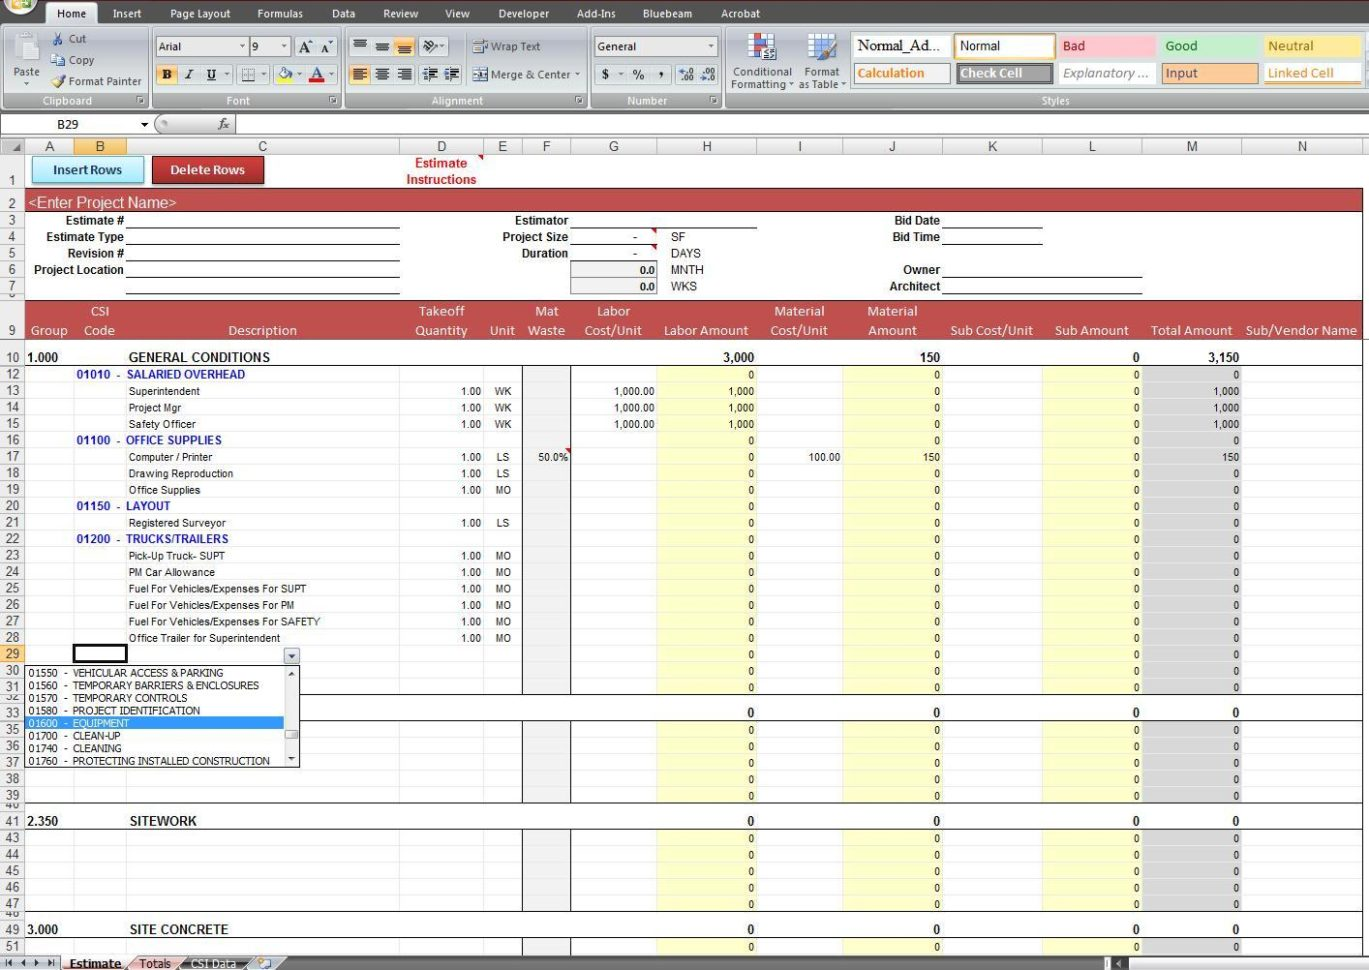 Expense Tracking Software Daily Expenses Sheet In Excel Format Free Download Sample Spreadsheet For Tracking Expenses Expense Report Forms Printable Monthly Business Expense Template Monthly Expenses Template Construction Job Costing Spreadsheet Template  Construction Job Costing Spreadsheet Template Expense Spreadsheet Template Expense Spreadsheet Spreadsheet Templates for Busines